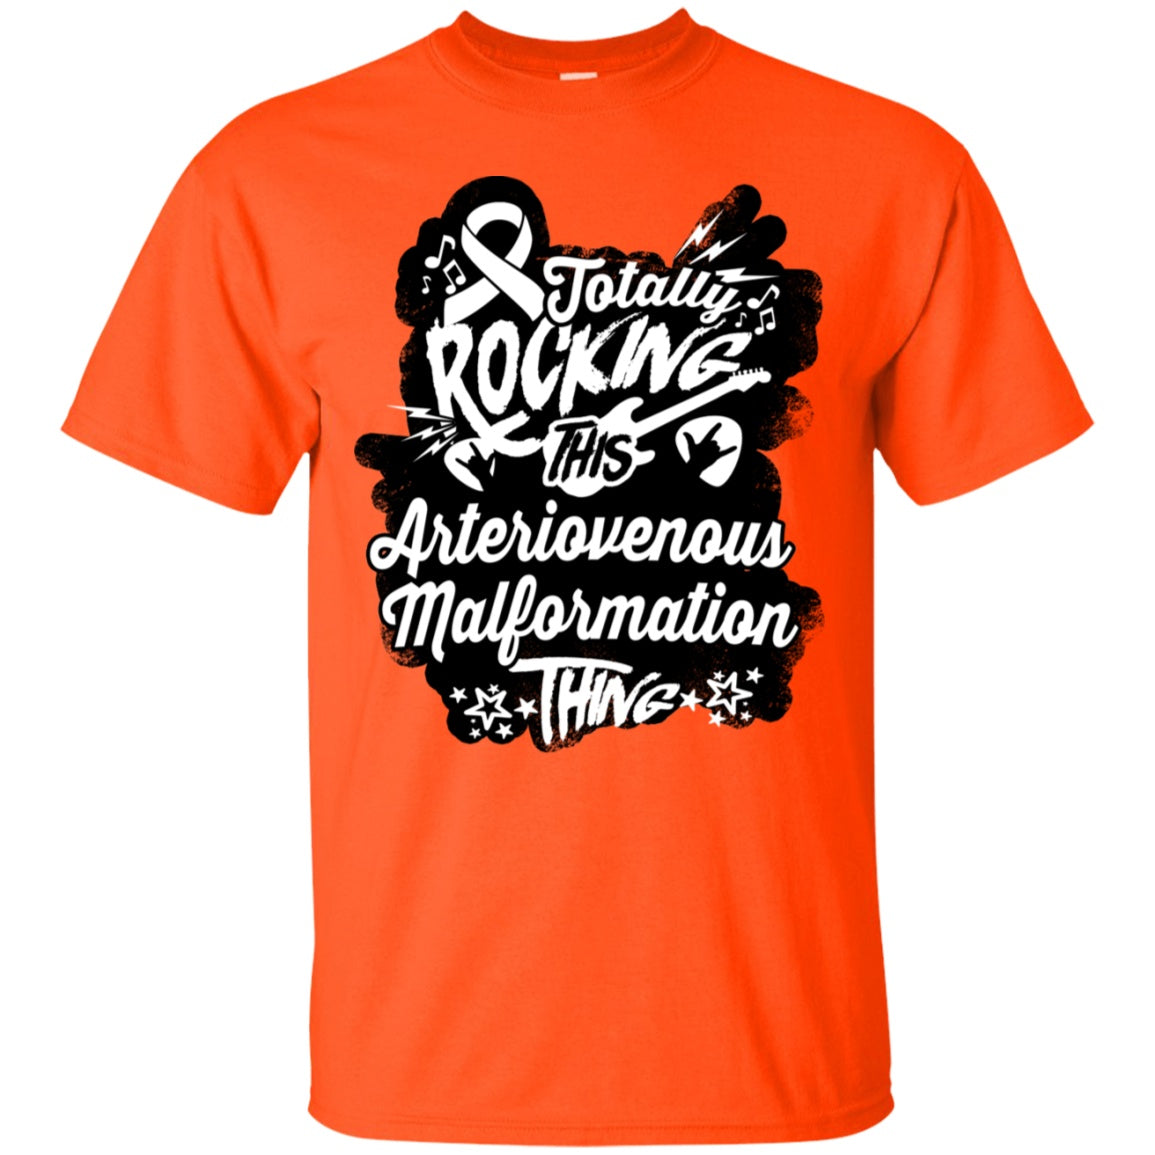 Rocking Arteriovenous Malformation Unisex Shirt - The Unchargeables